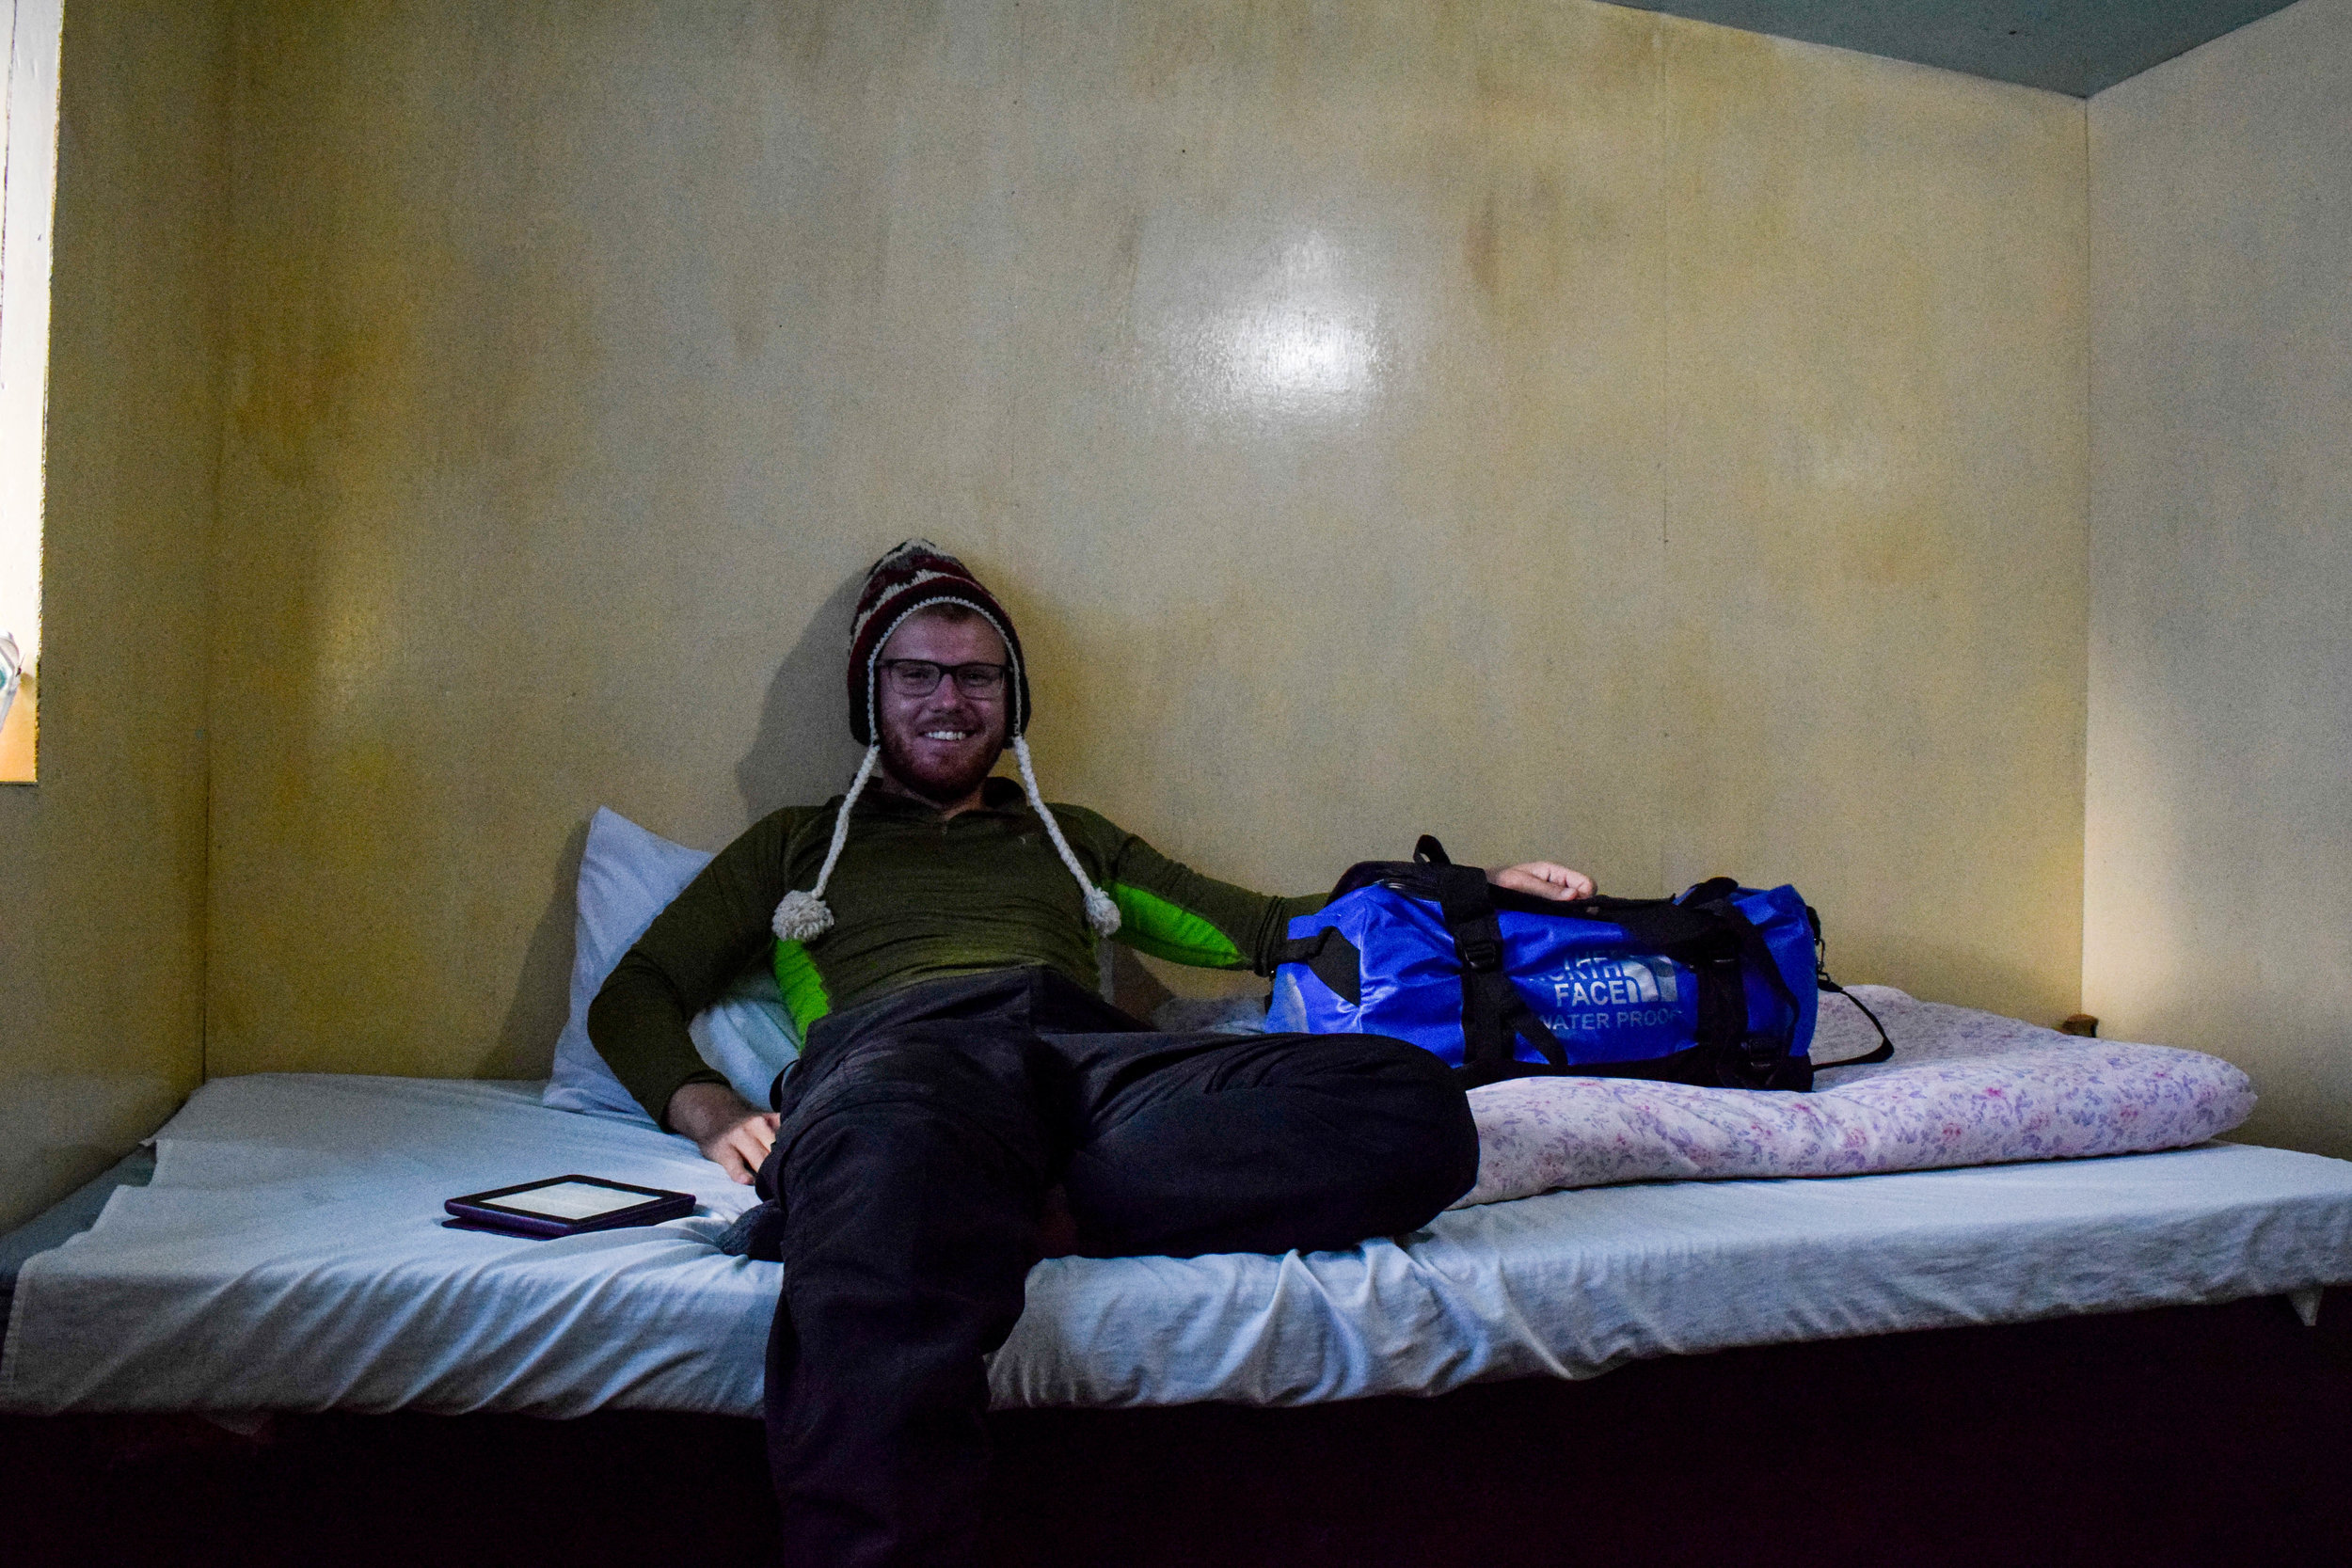 Leisure time in Dingboche, where all we had for amusement was our Kindles and playing cards.